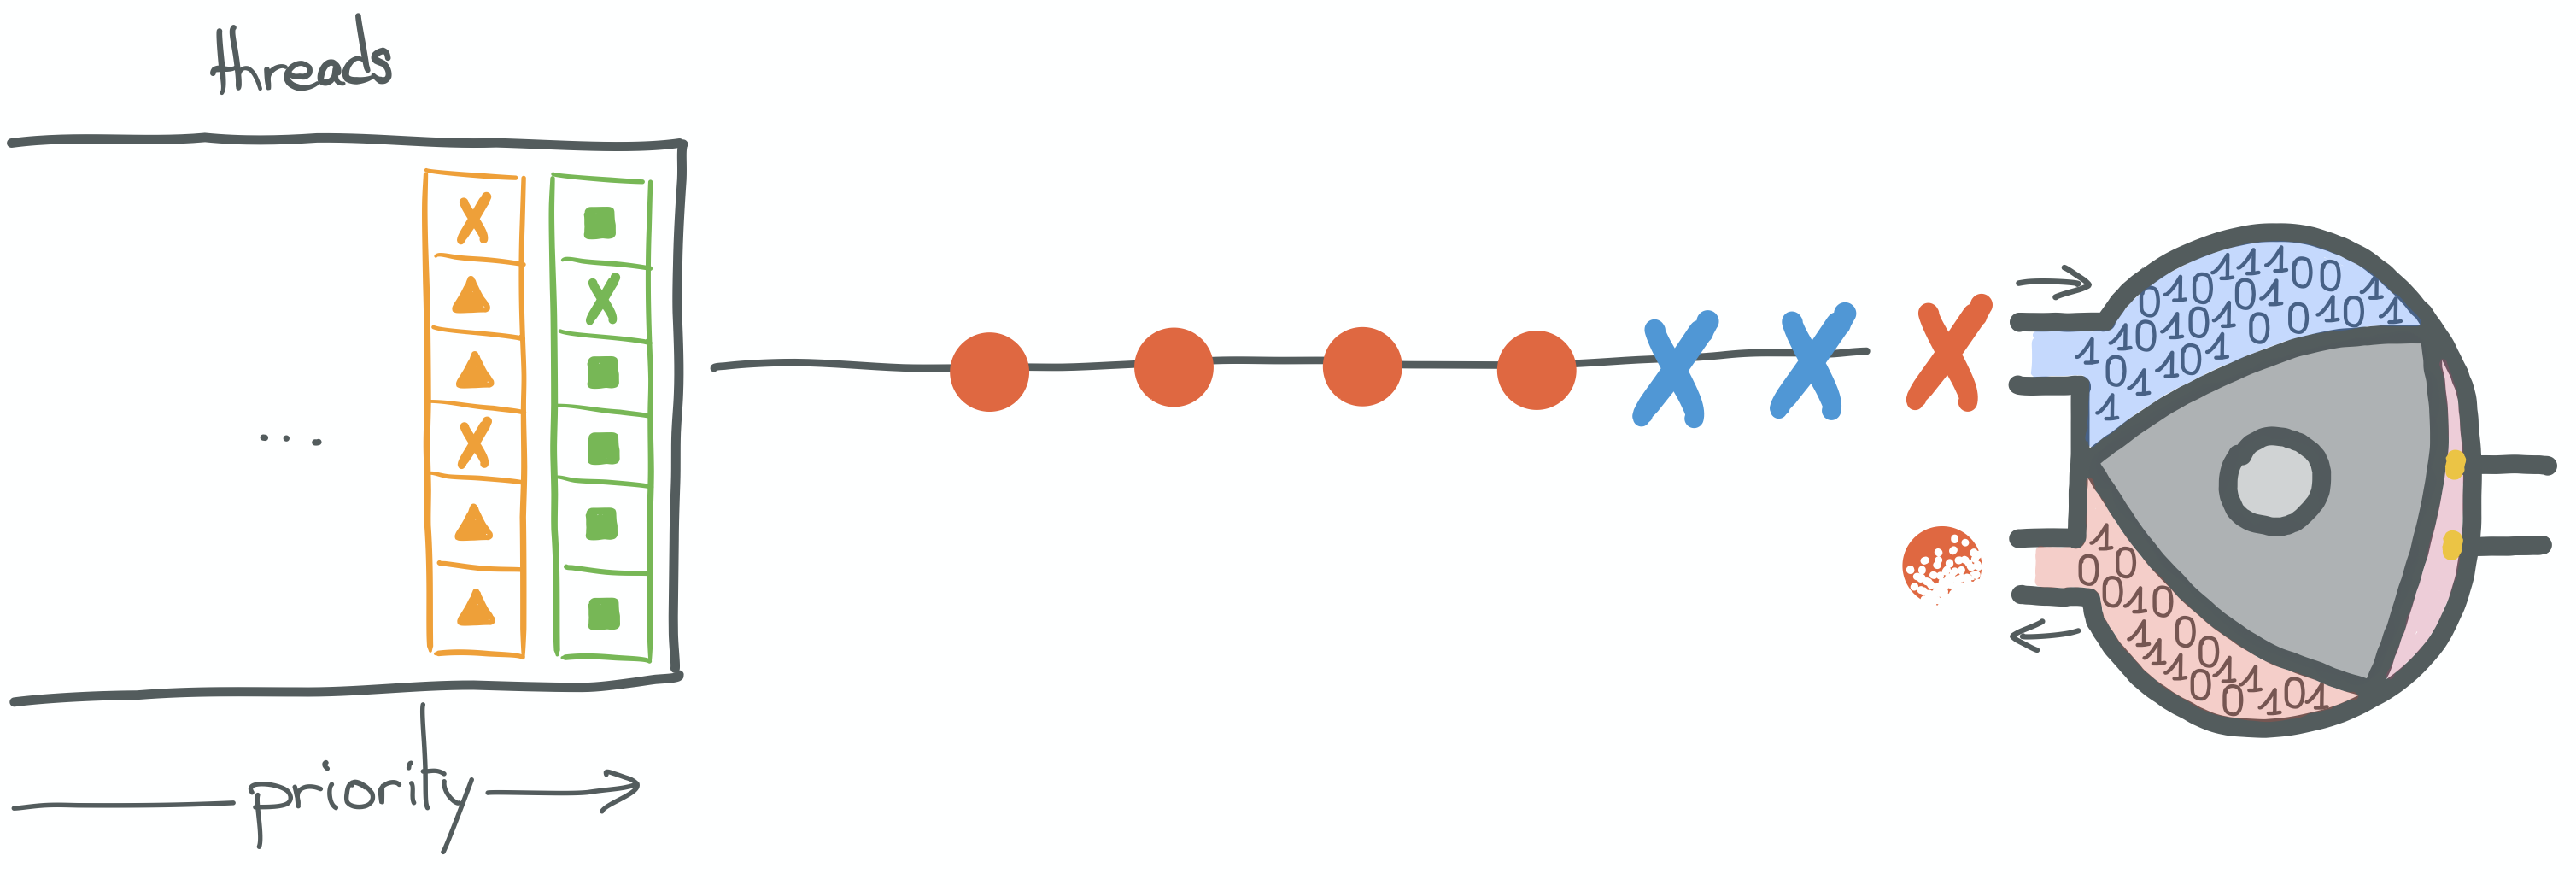 A context switch